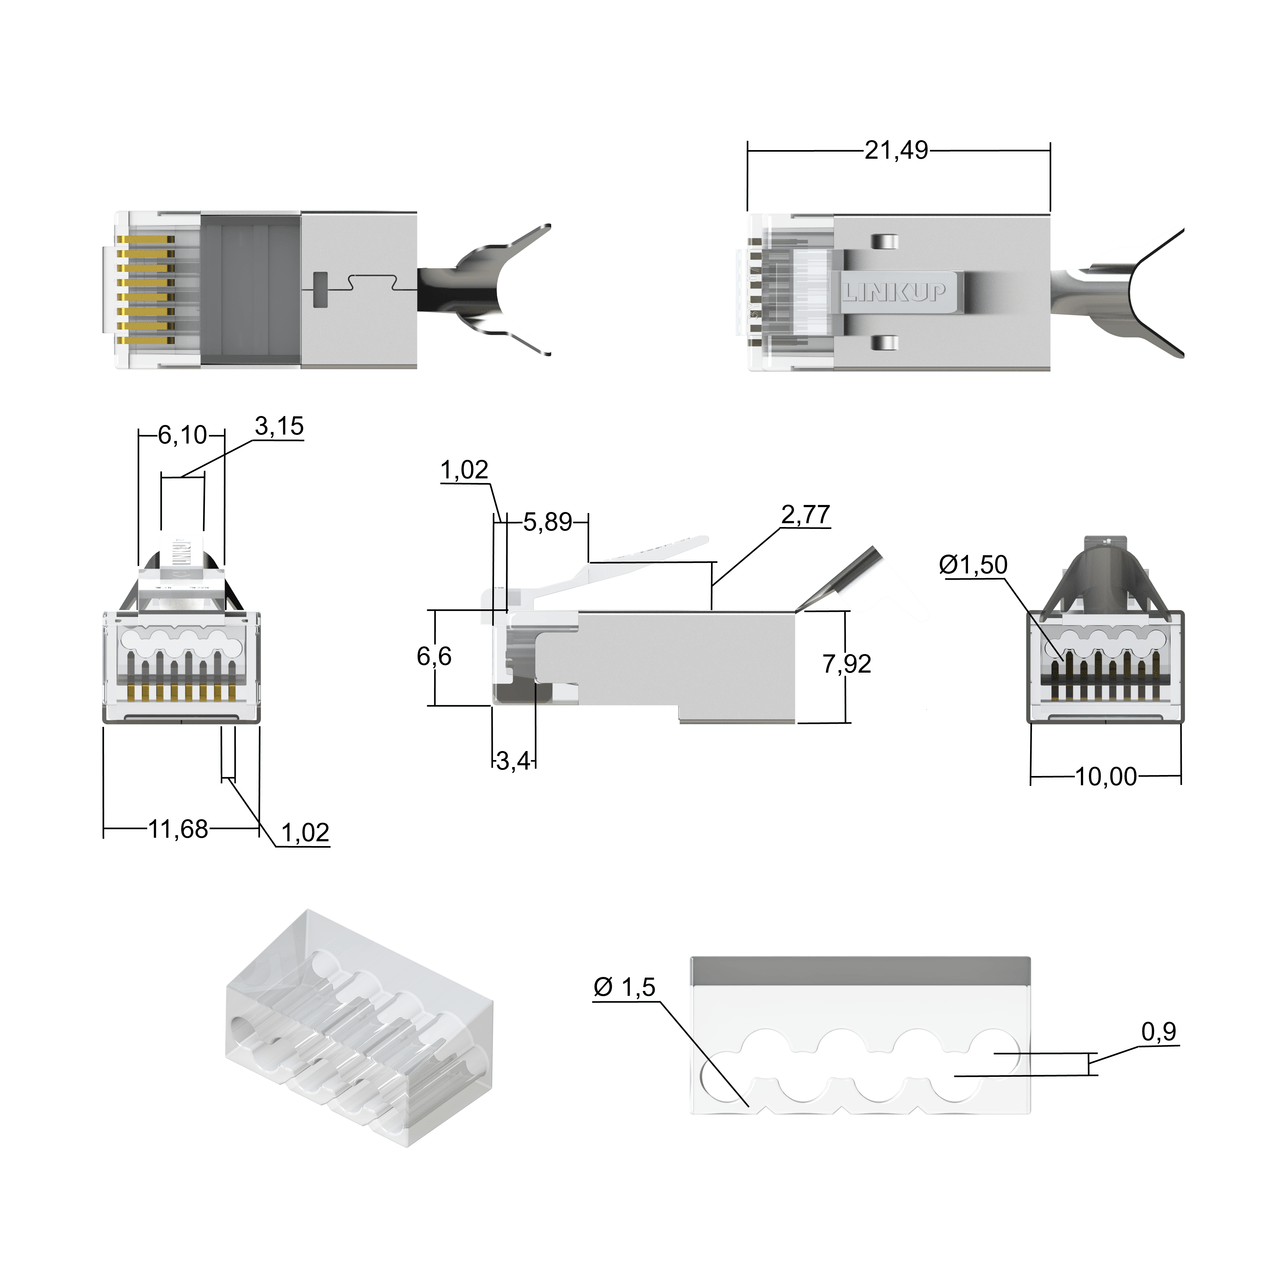 linkup rj45 connectors cat6a ethernet shielded modular plugs for large diameter wires 22awg termination  [ 1280 x 1280 Pixel ]